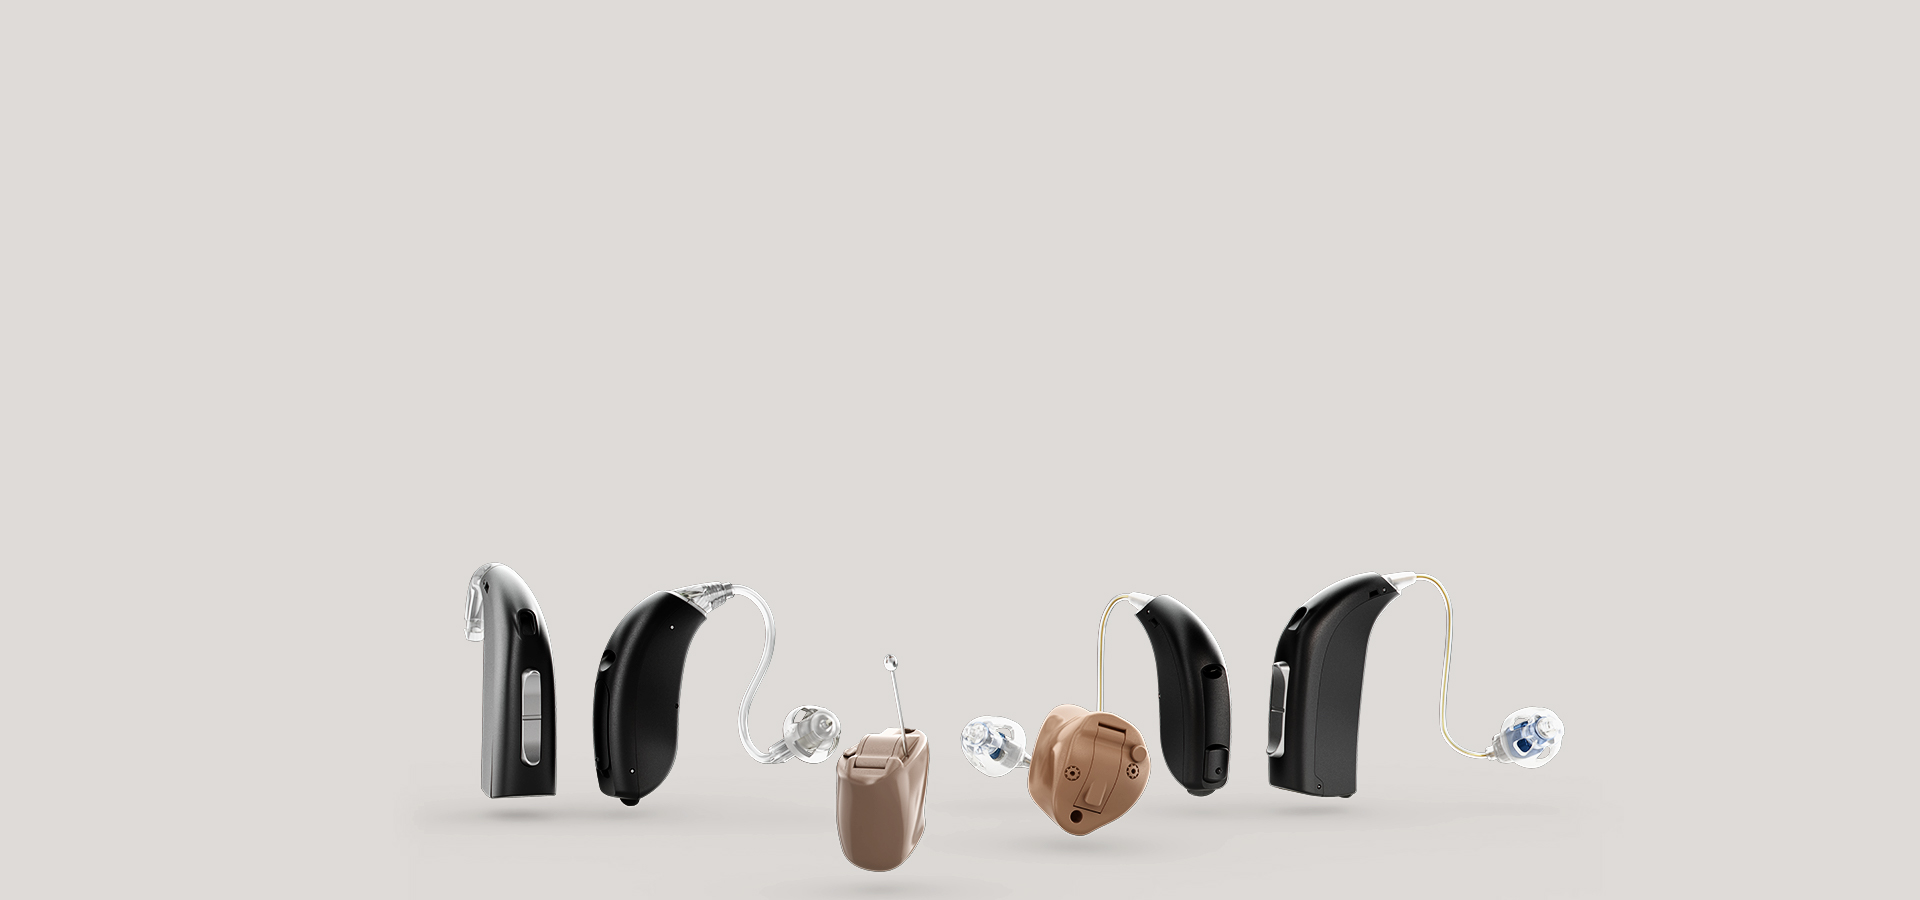 introbanner-kinds-of-hearing-aids-1920x900